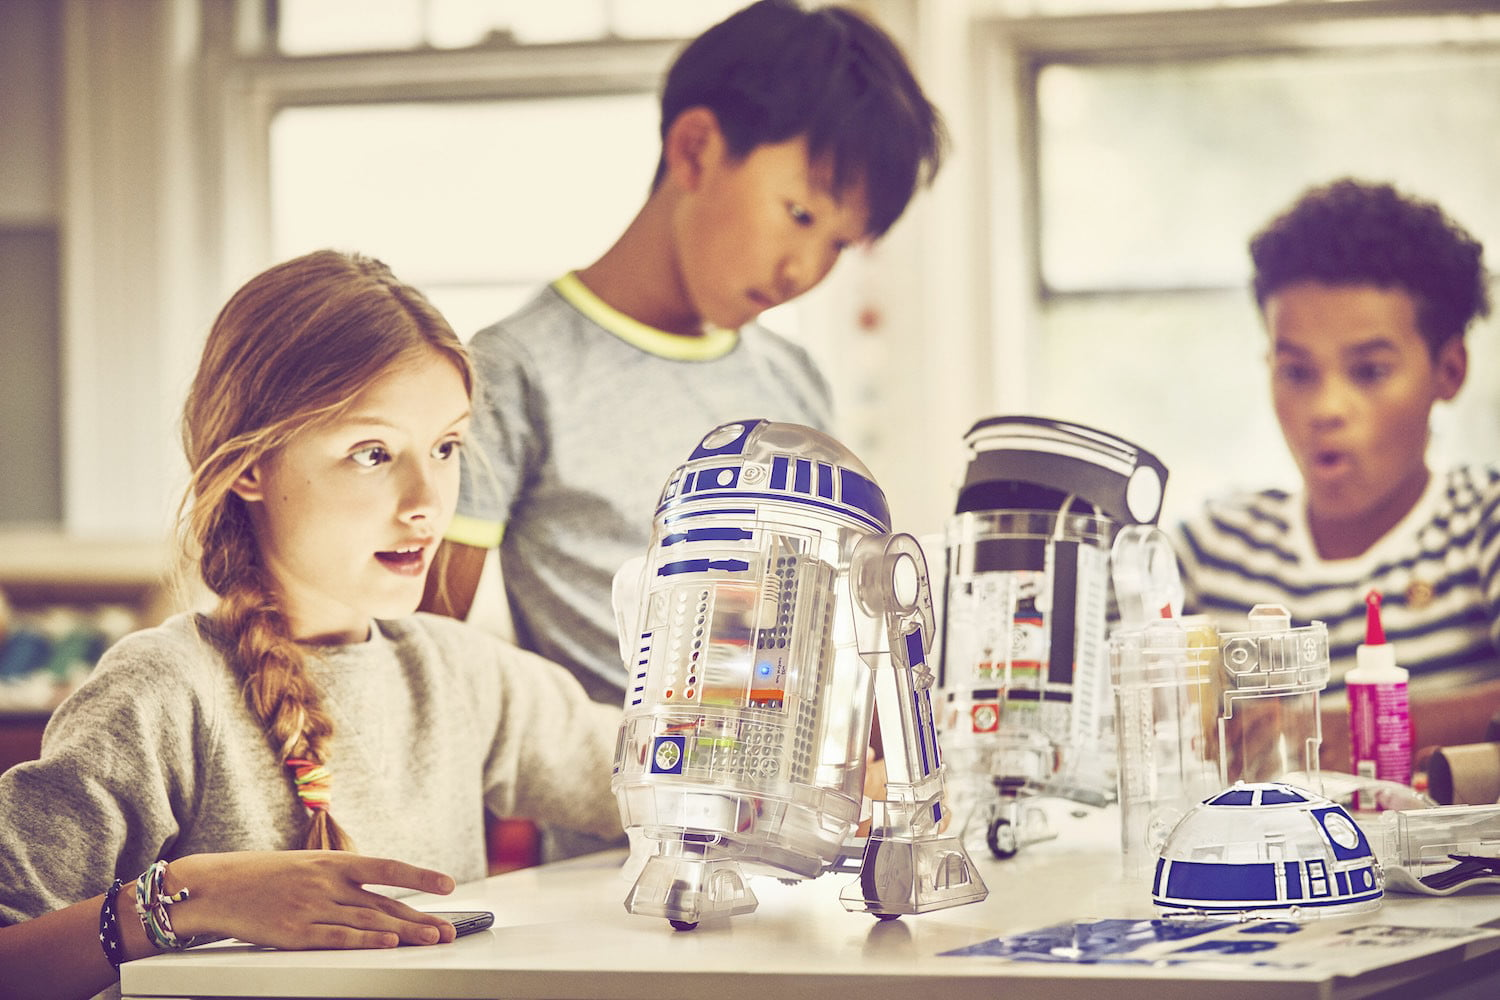 Best Gifts For 5 Yr Old Girl 2020 The Best Tech Toys for Kids | Digital Trends